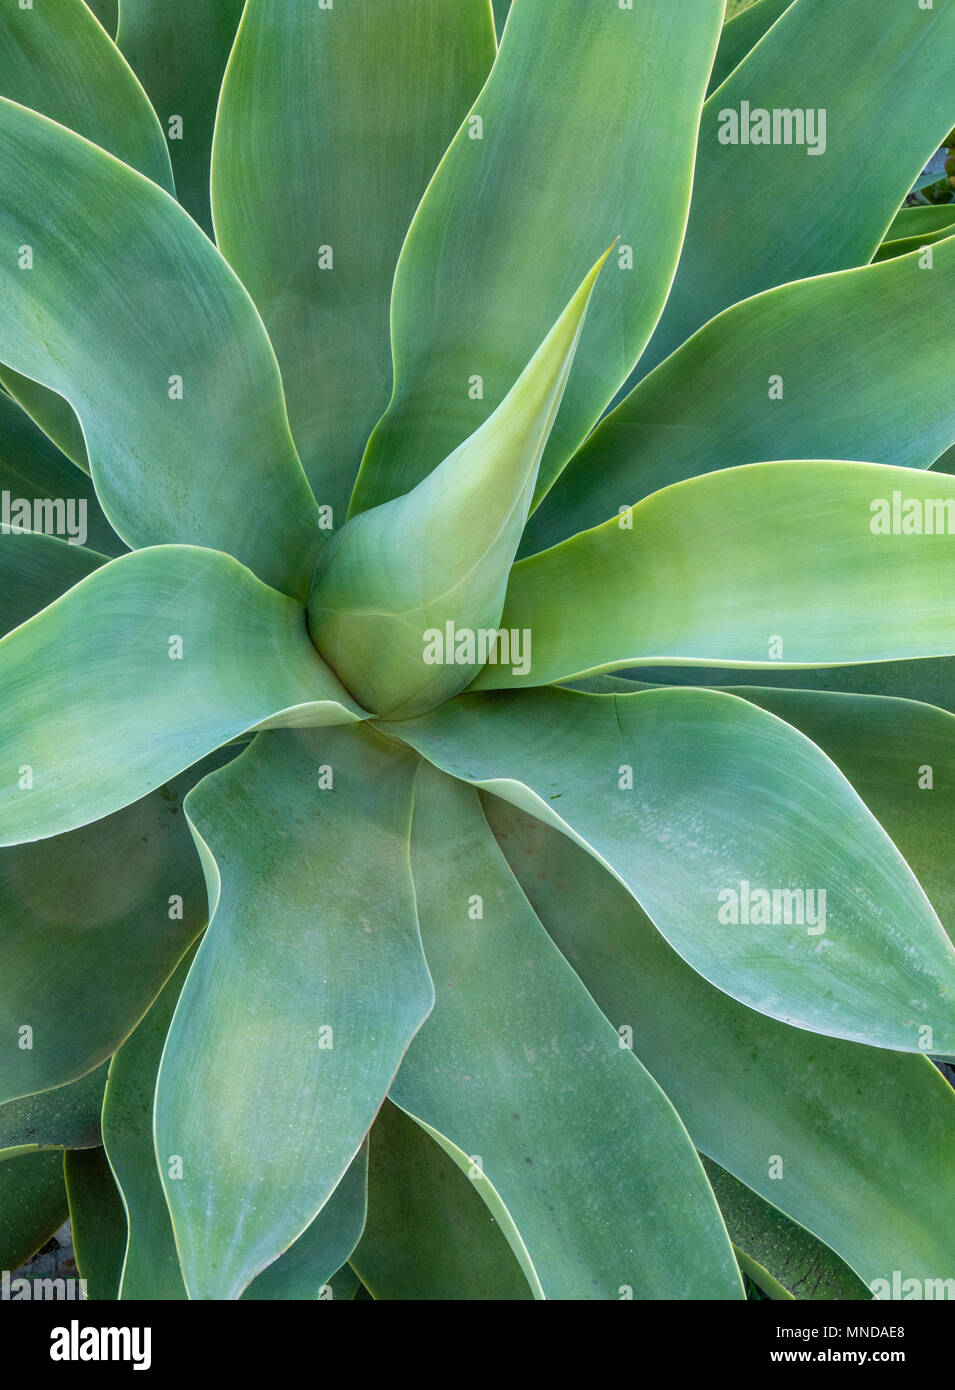 Broad leaved Agave attenuata plant in the garden of a house in La Gomera in the Canary Islands - Stock Image